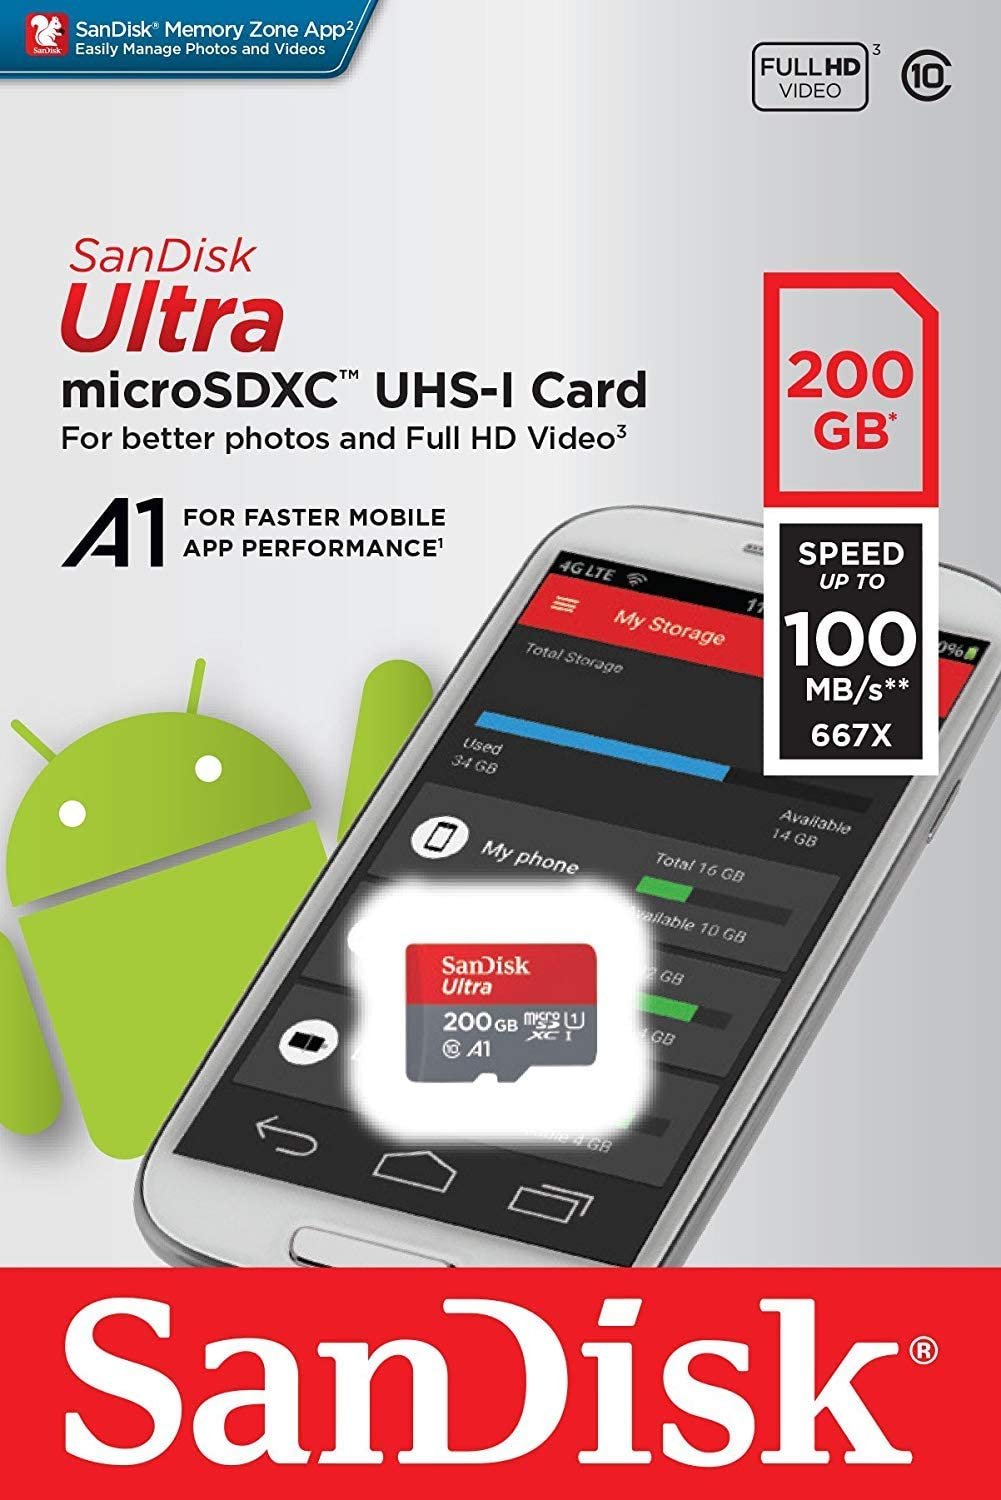 100MBs A1 U1 C10 Works with SanDisk SanDisk Ultra 200GB MicroSDXC Verified for LG K550 by SanFlash